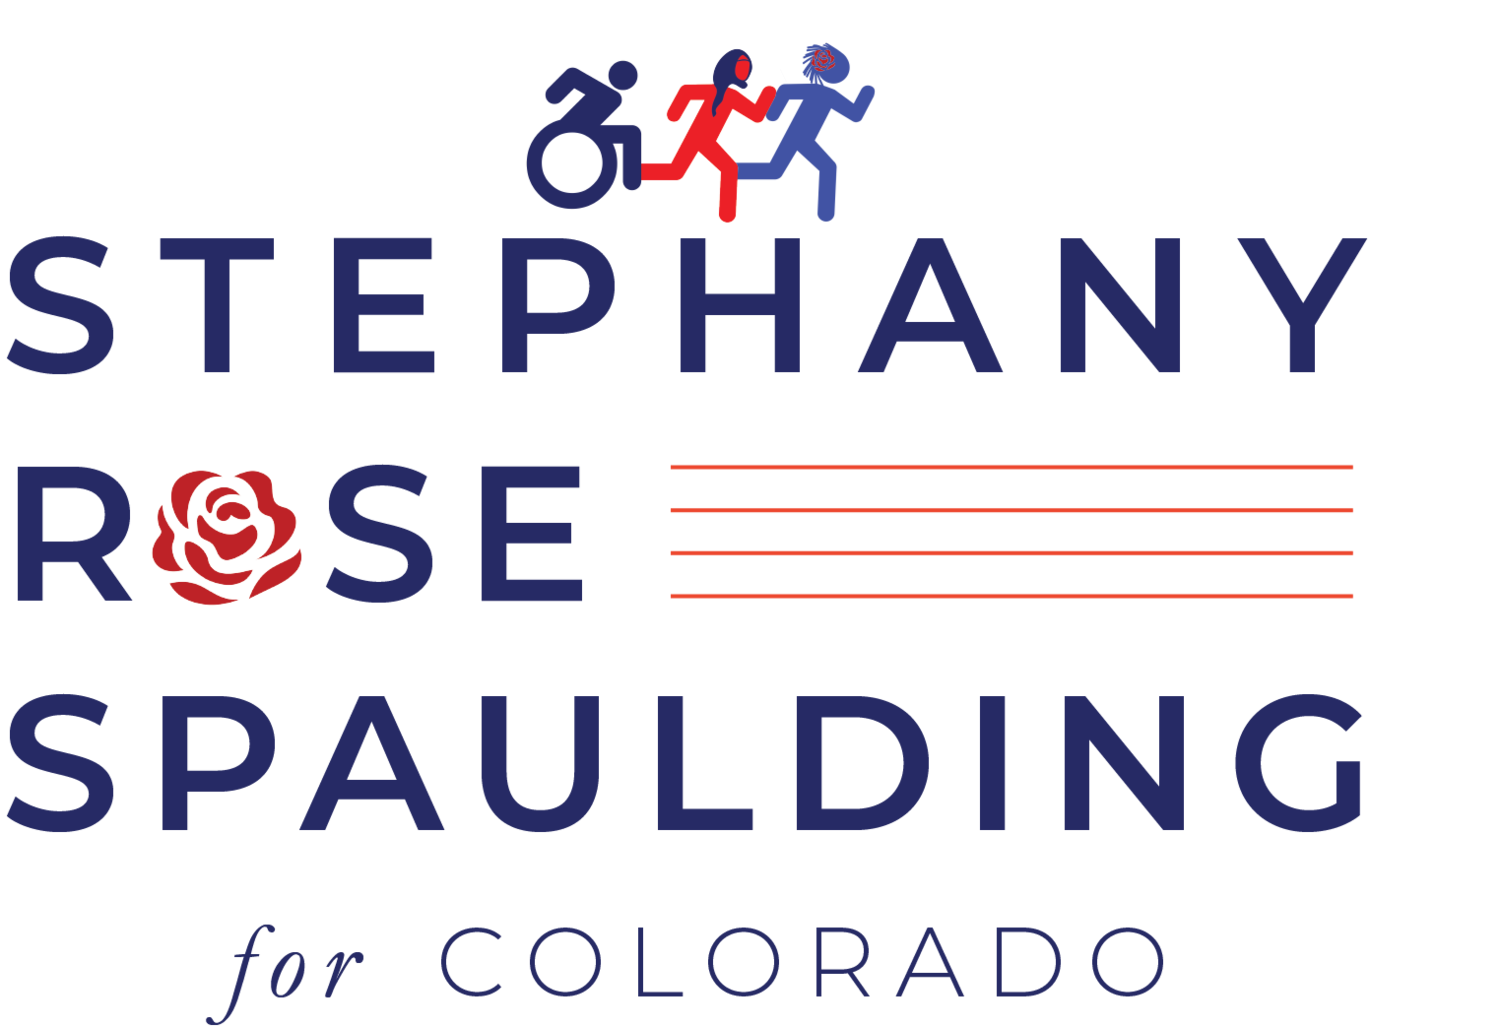 Stephany Rose Spaulding for Colorado